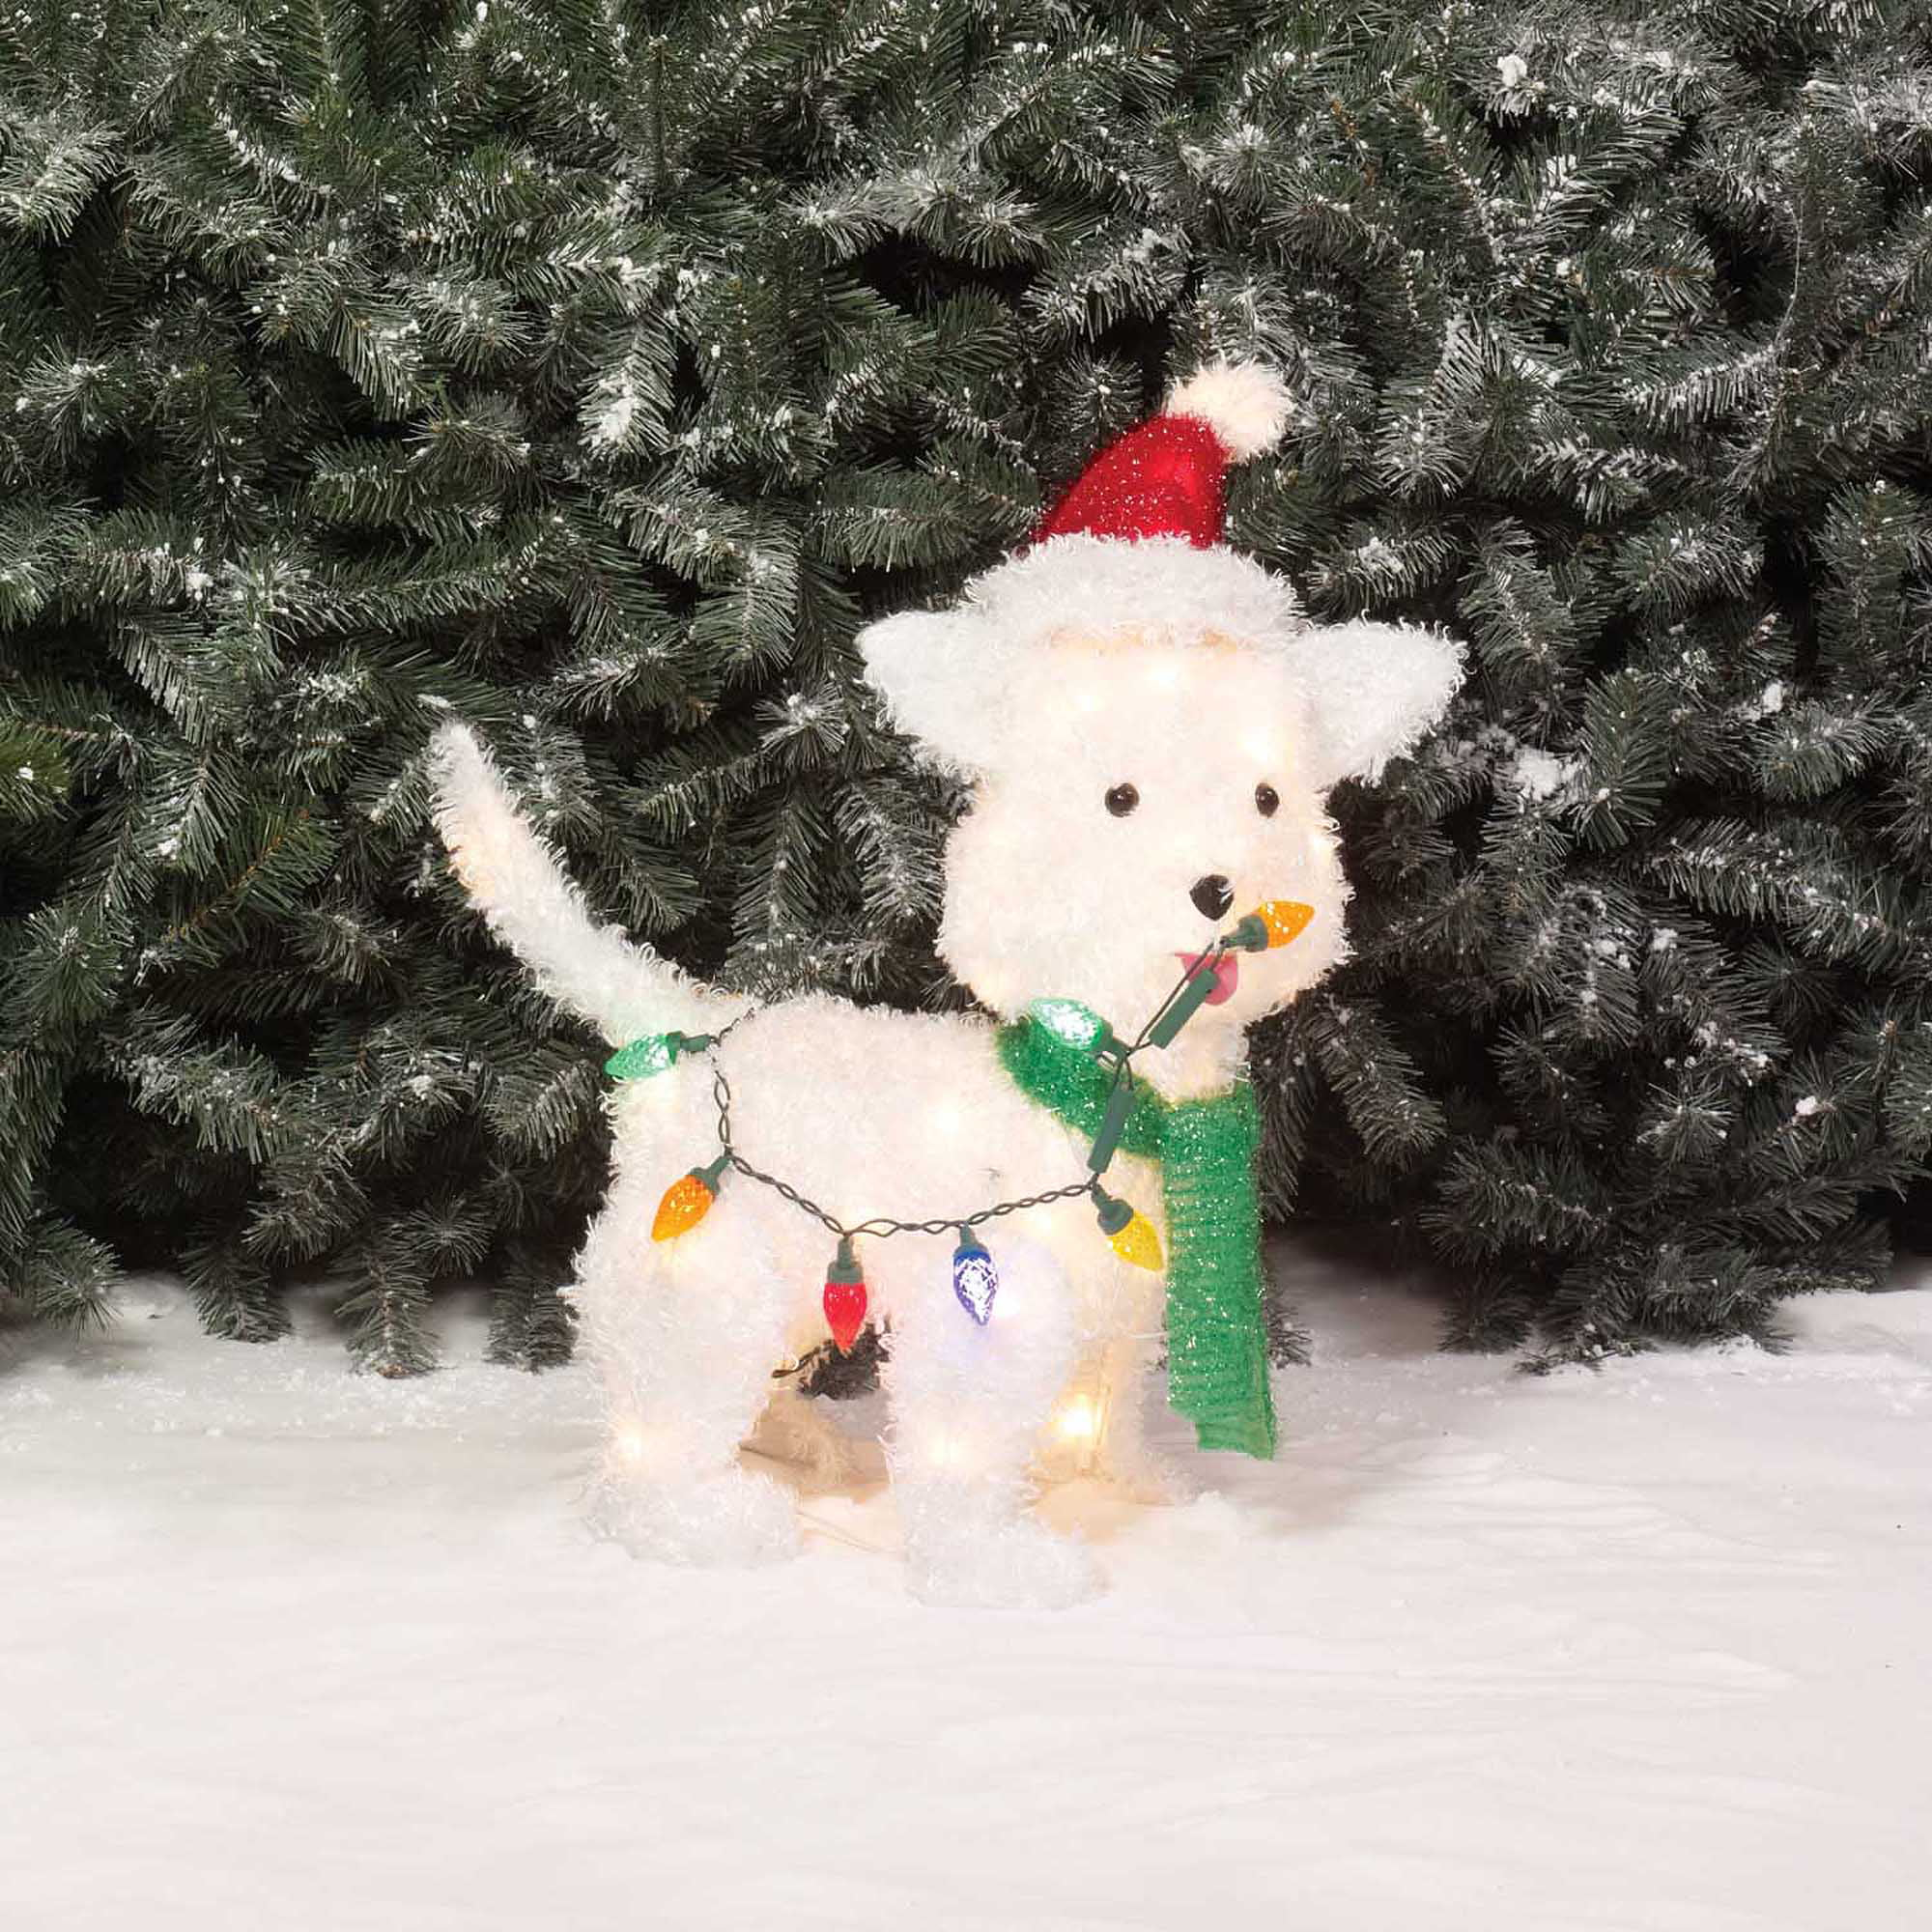 holiday time christmas decor 24 fluffy dog light sculpture walmartcom - Walmart Christmas Yard Decorations